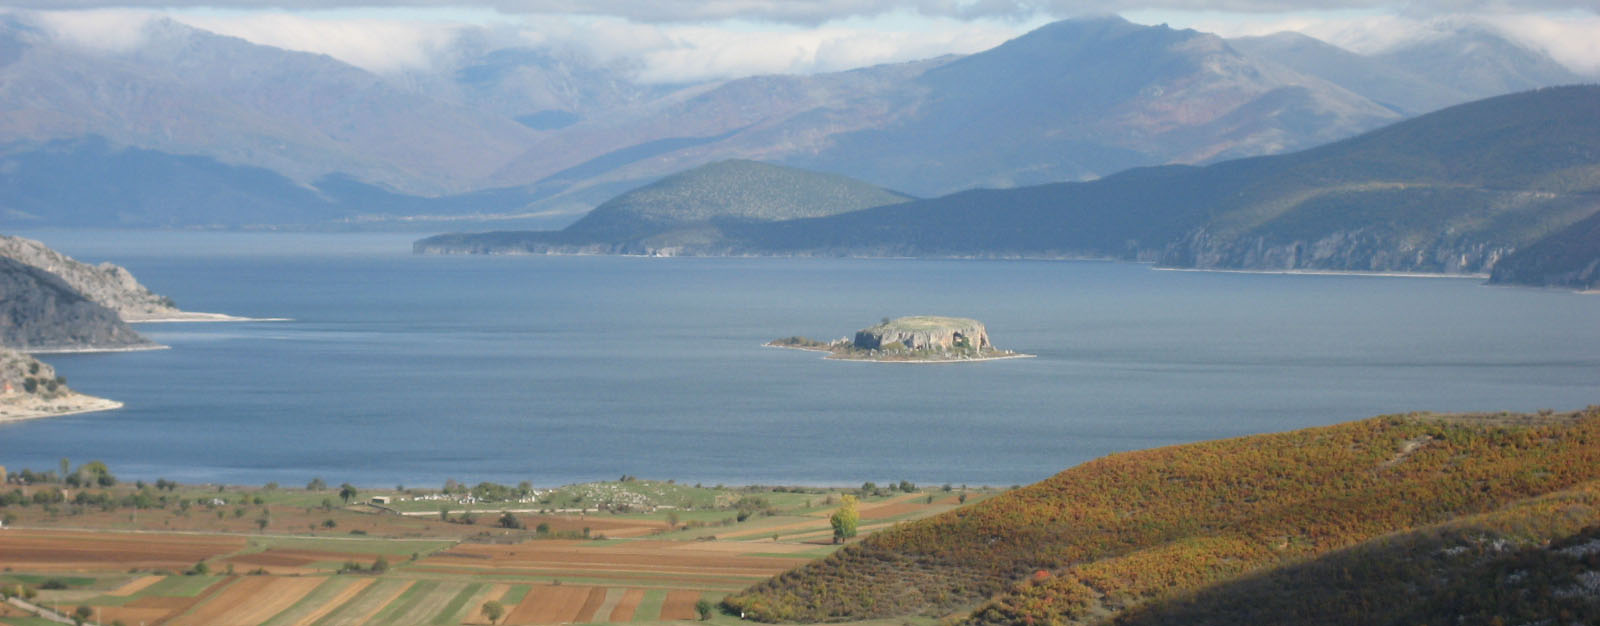 Prespa panorama facing north